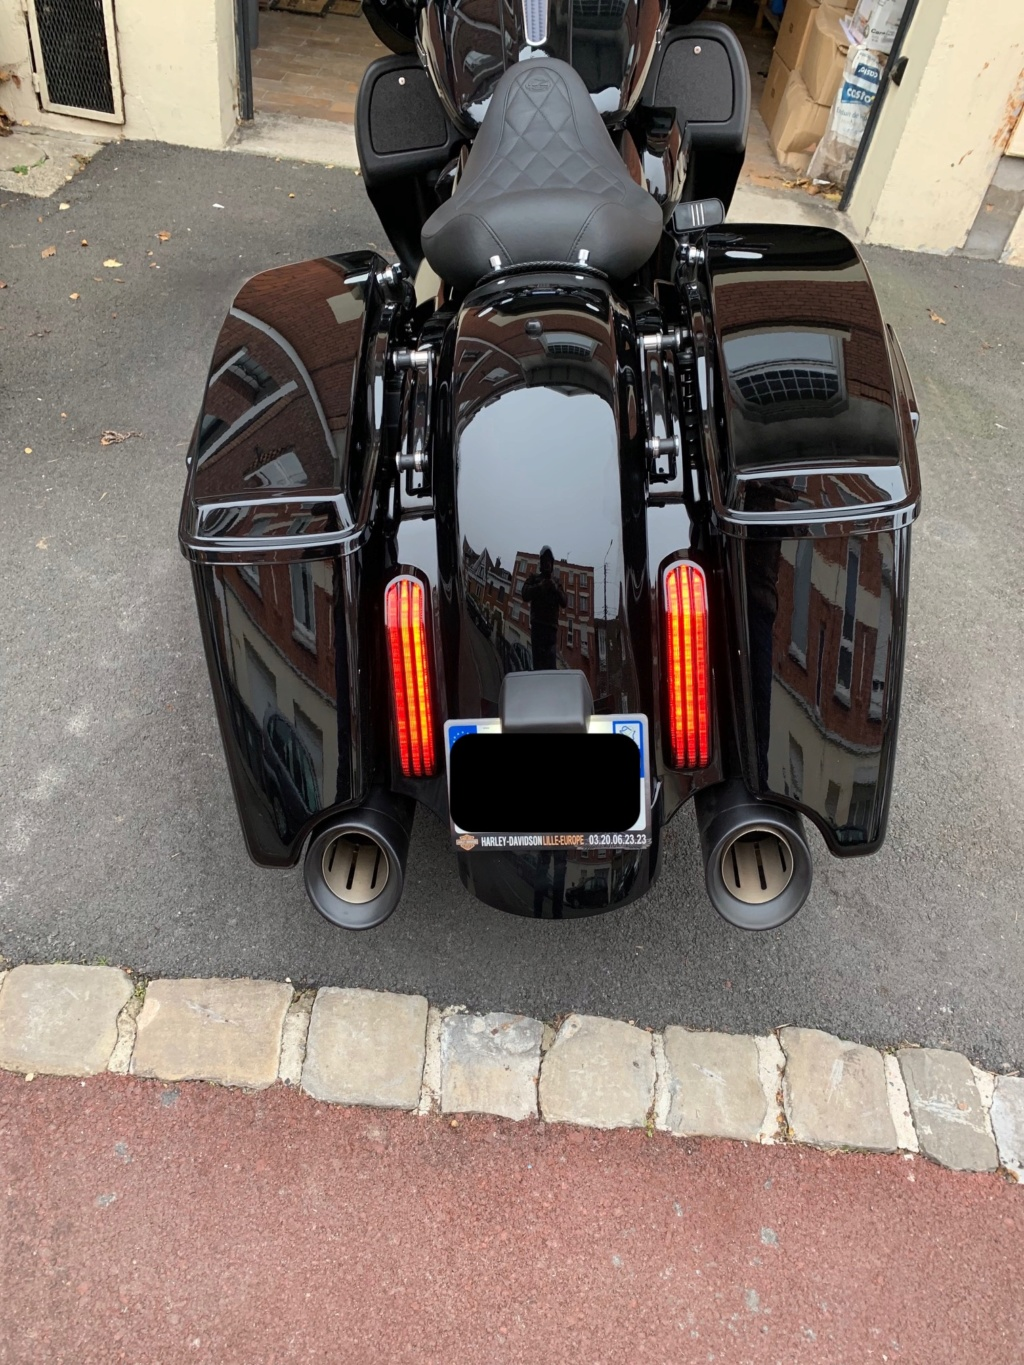 Le Road Glide Special de Tortueninja - Page 4 Img_4416